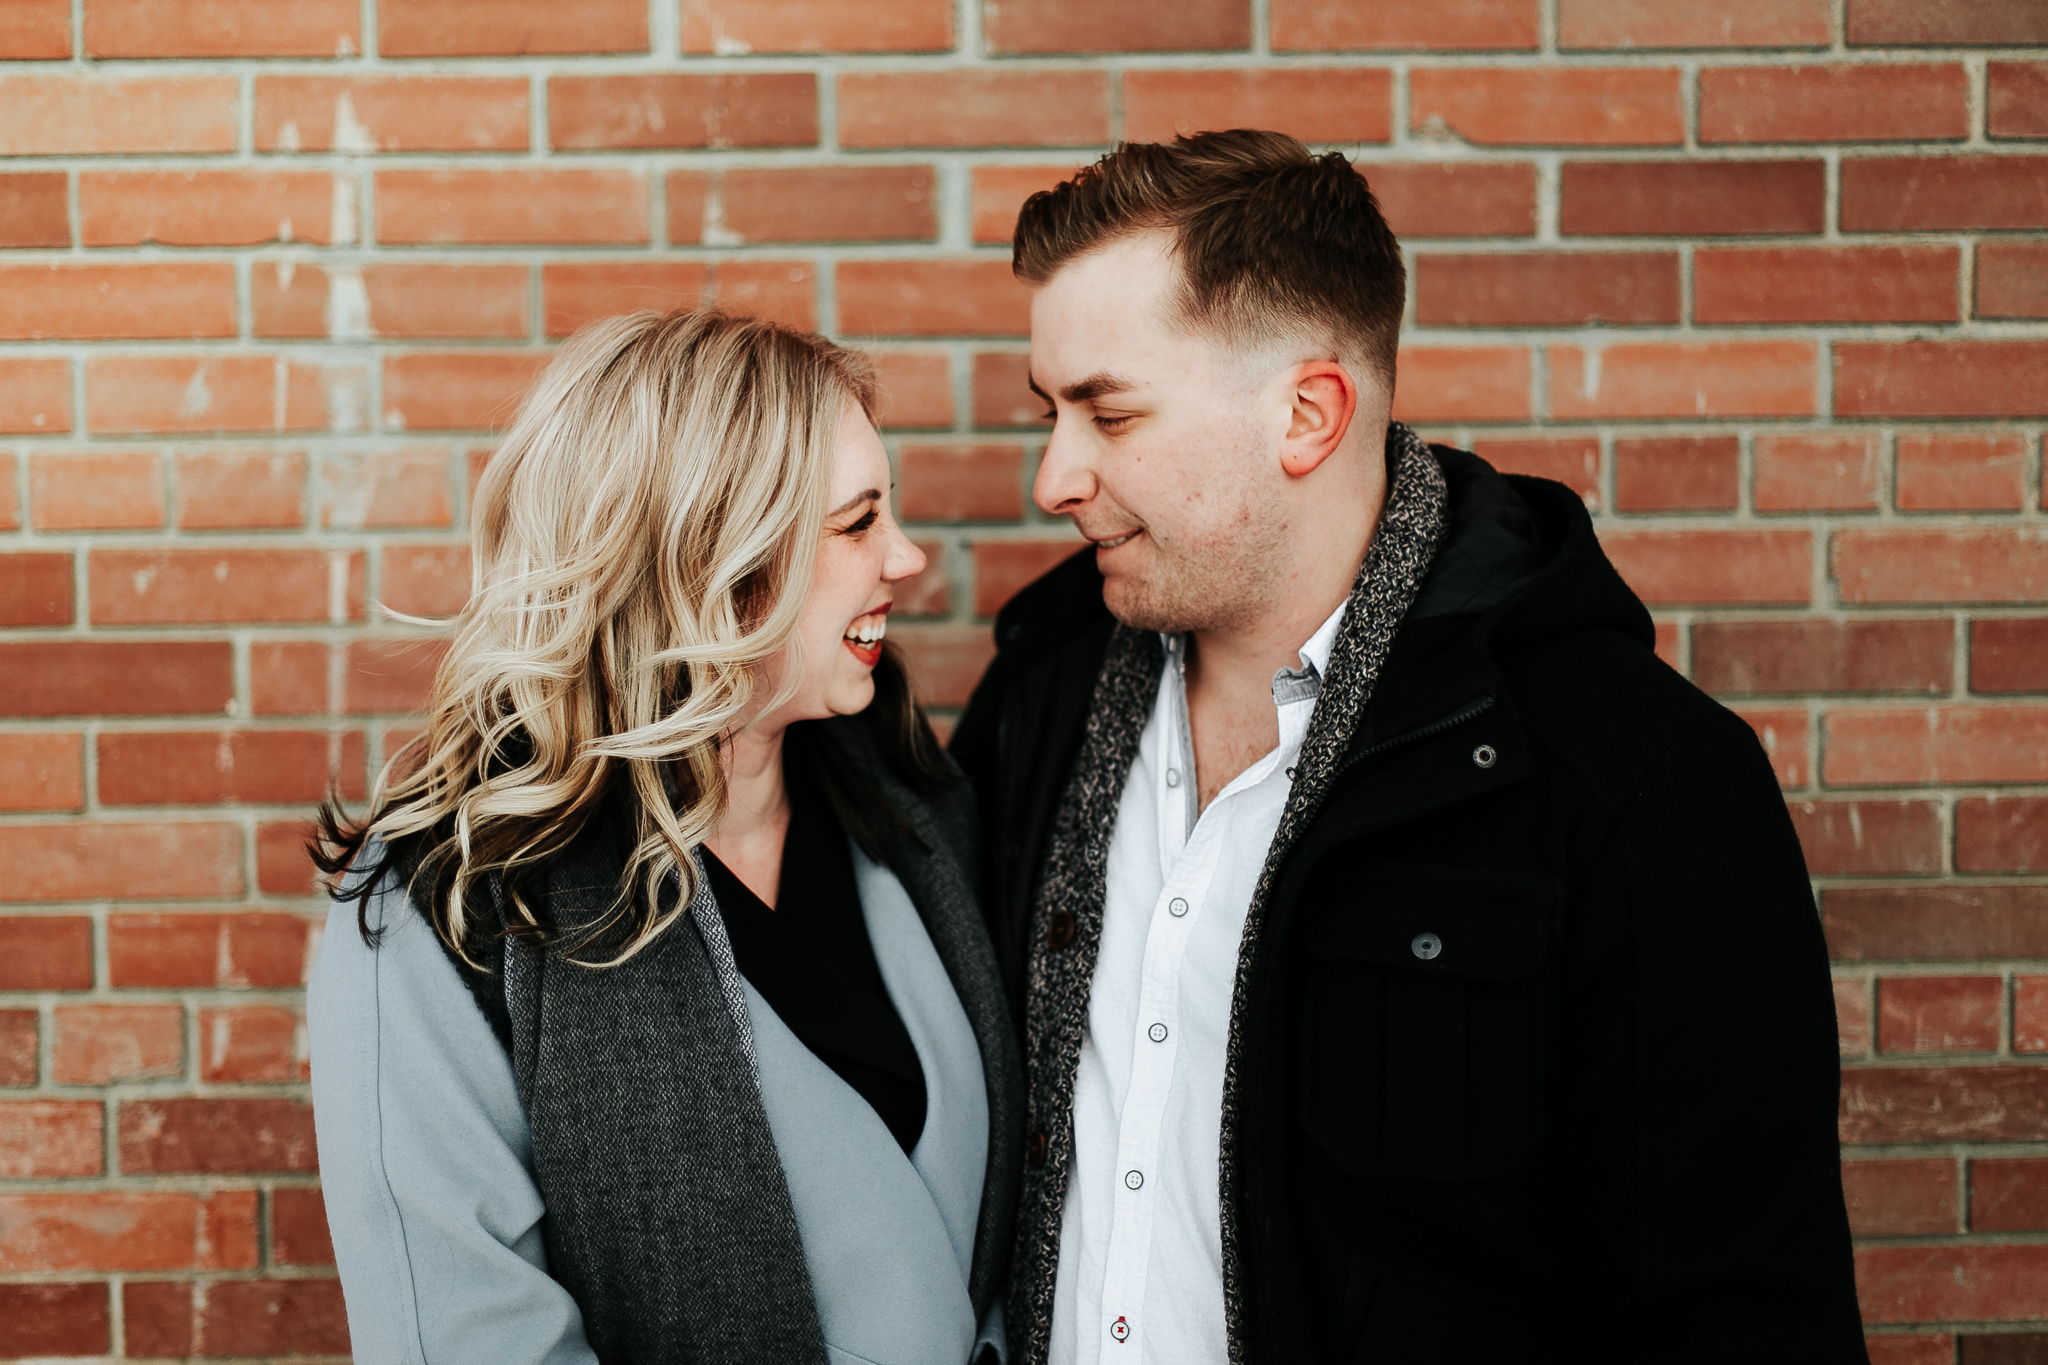 lethbridge-photographer-love-and-be-loved-photography-brandon-danielle-winter-engagement-downtown-yql-picture-image-photo-39.jpg